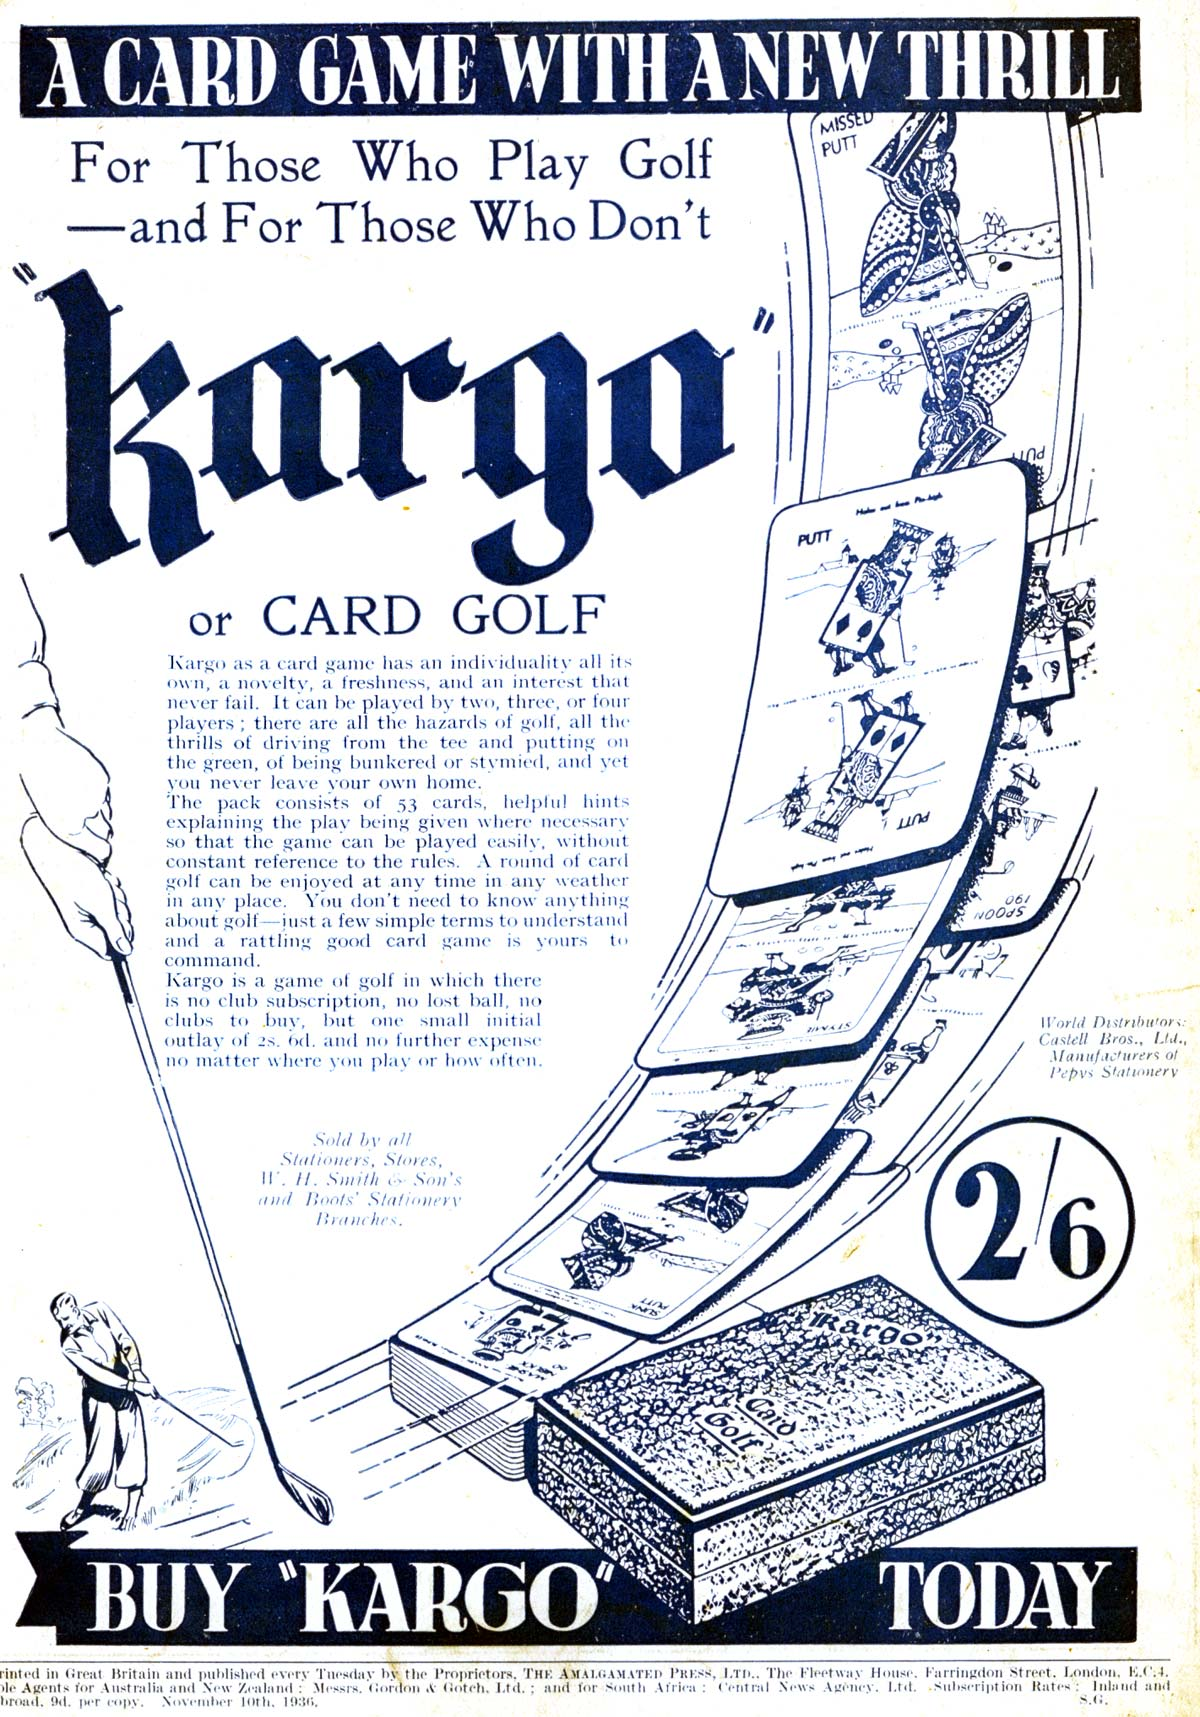 Kargo golf card game manufactured by Castell Brothers Ltd for Pepys Games, c.1936